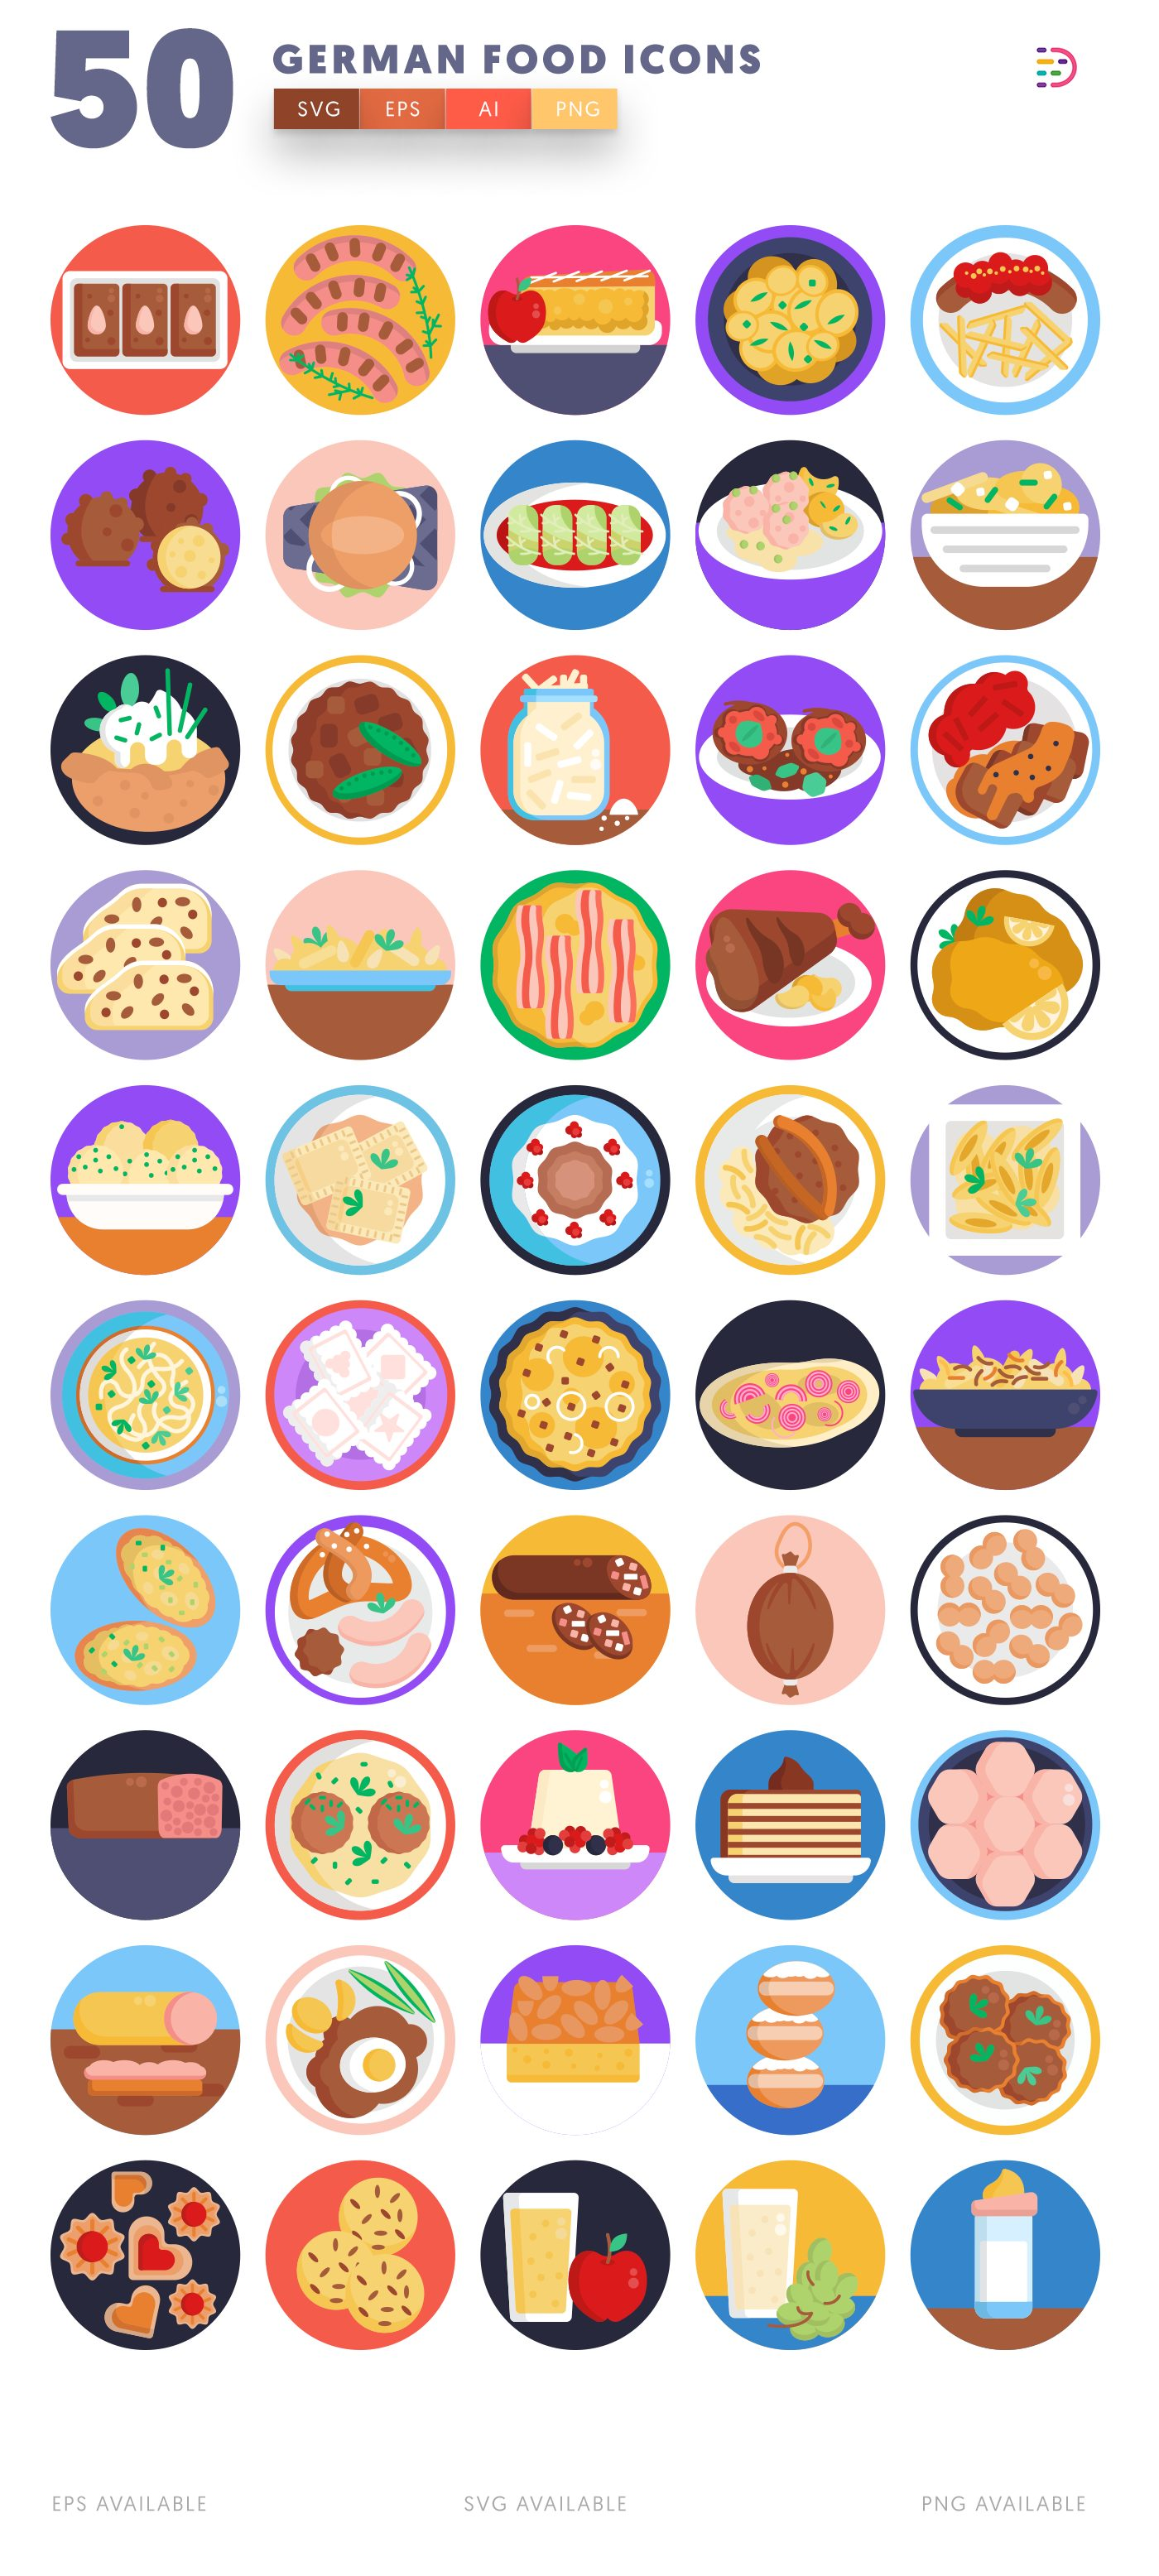 German Food icon pack